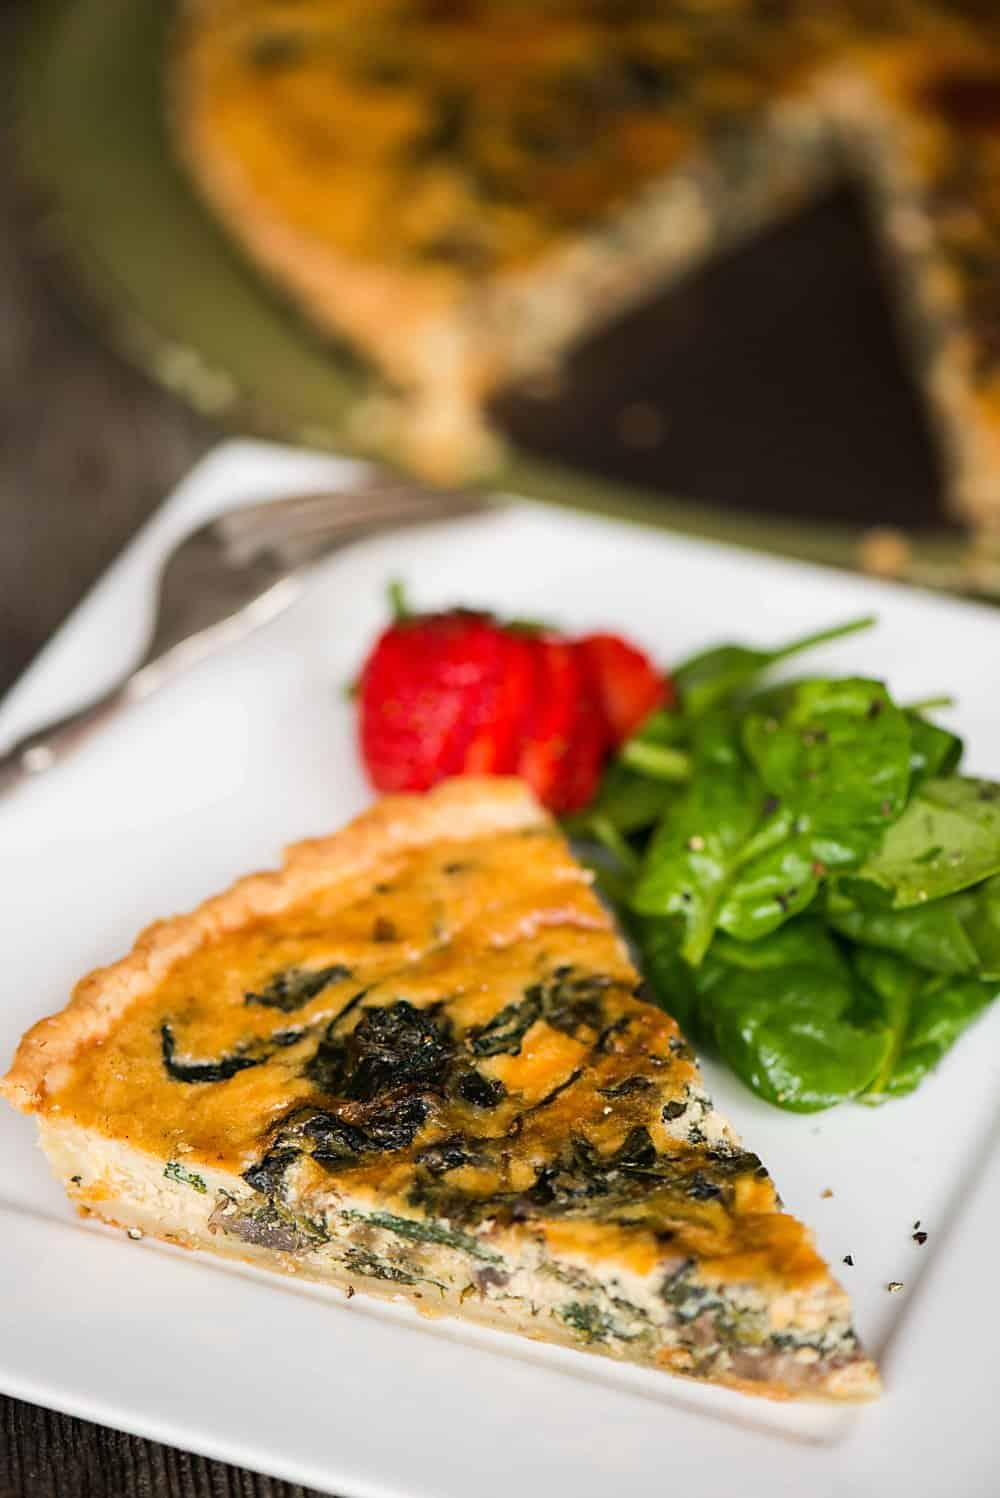 slice of homemade quiche on plate with spinach